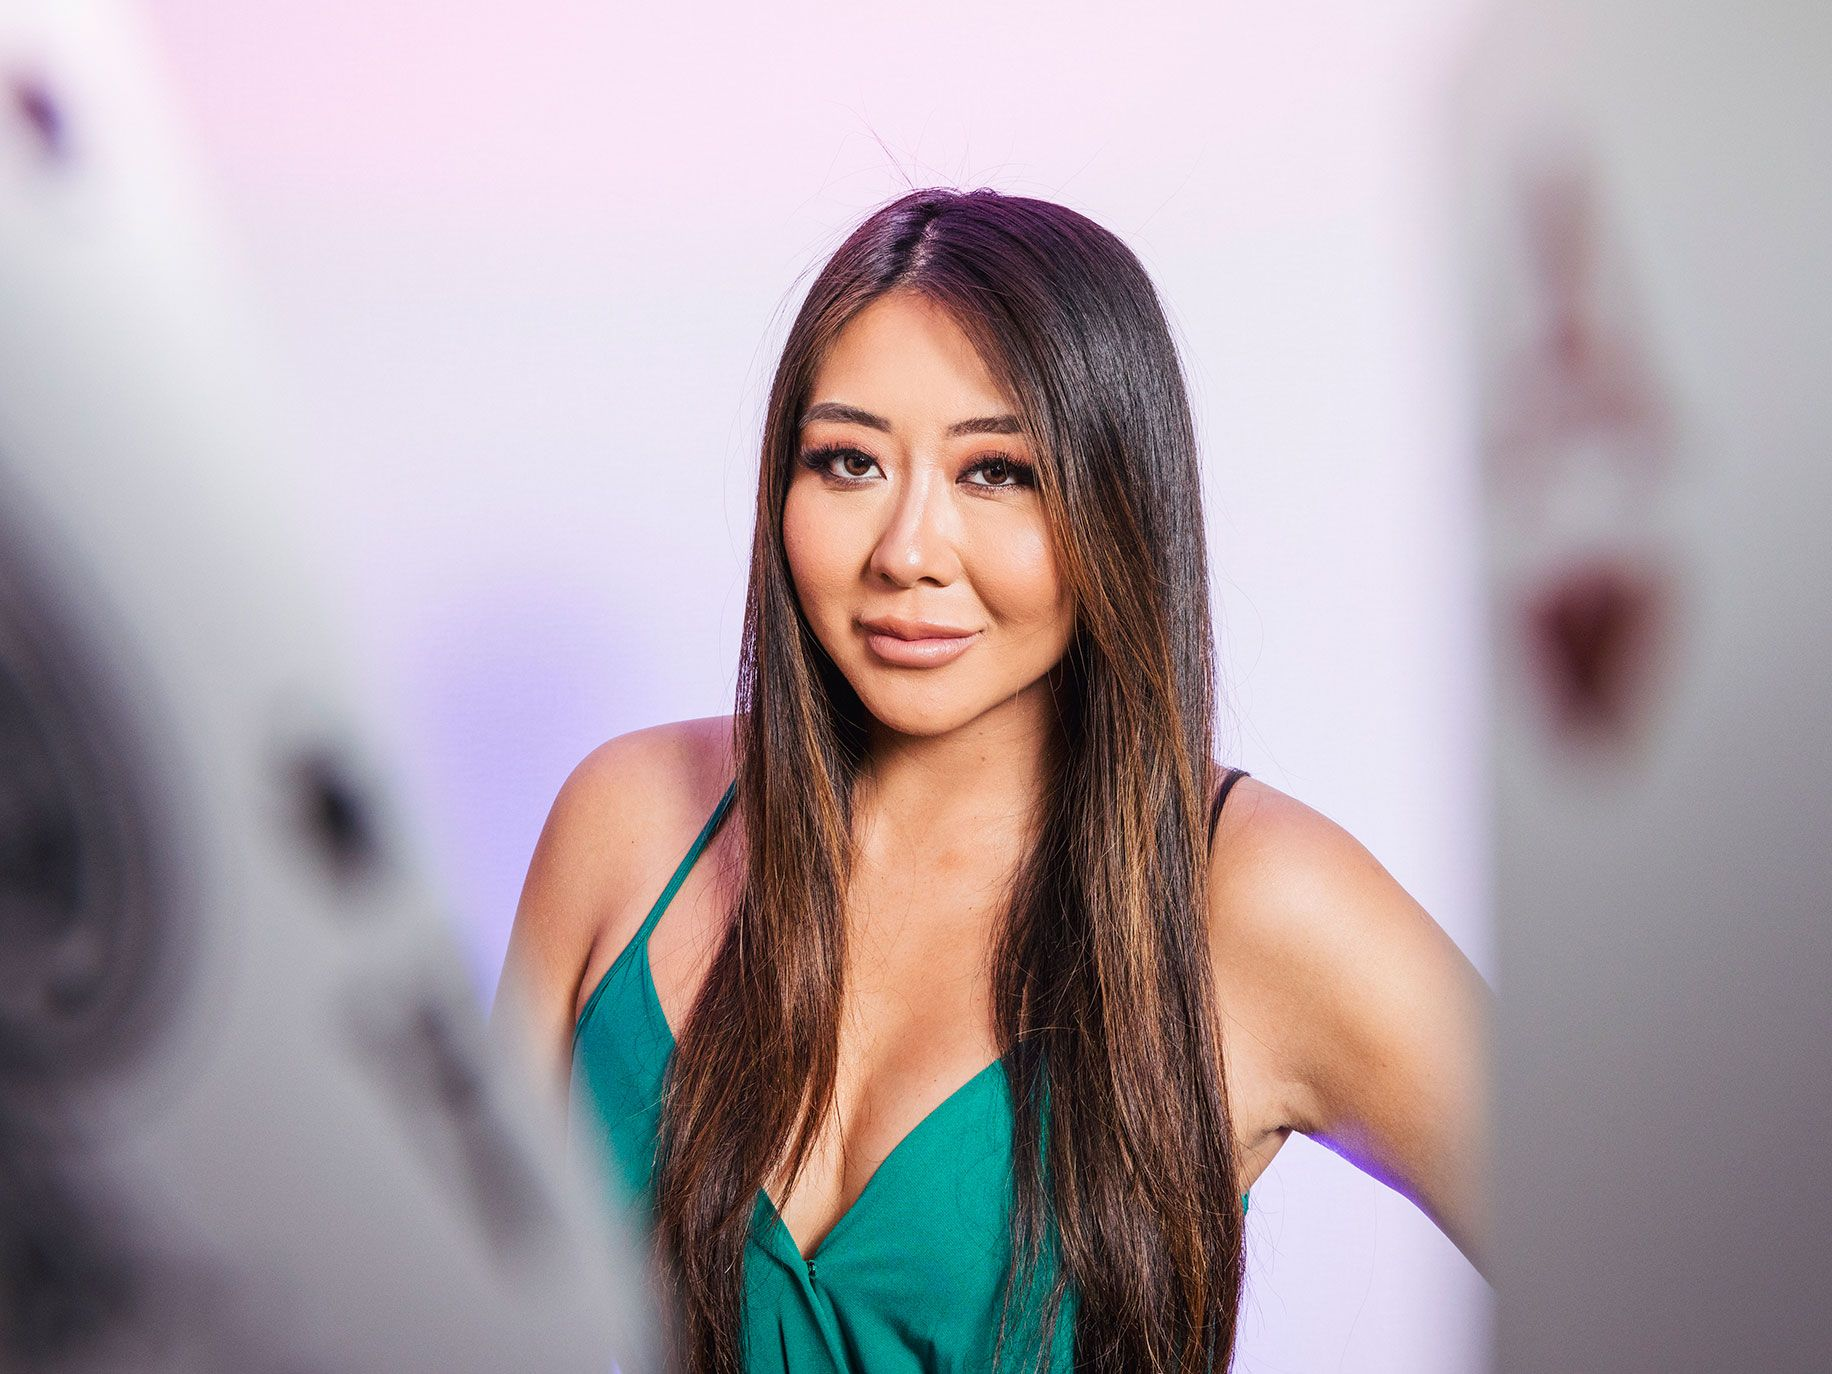 Maria Ho, seen here posing on a red carpet, has parlayed her poker stardom into a role as a poker tournament commentator on ESPN.